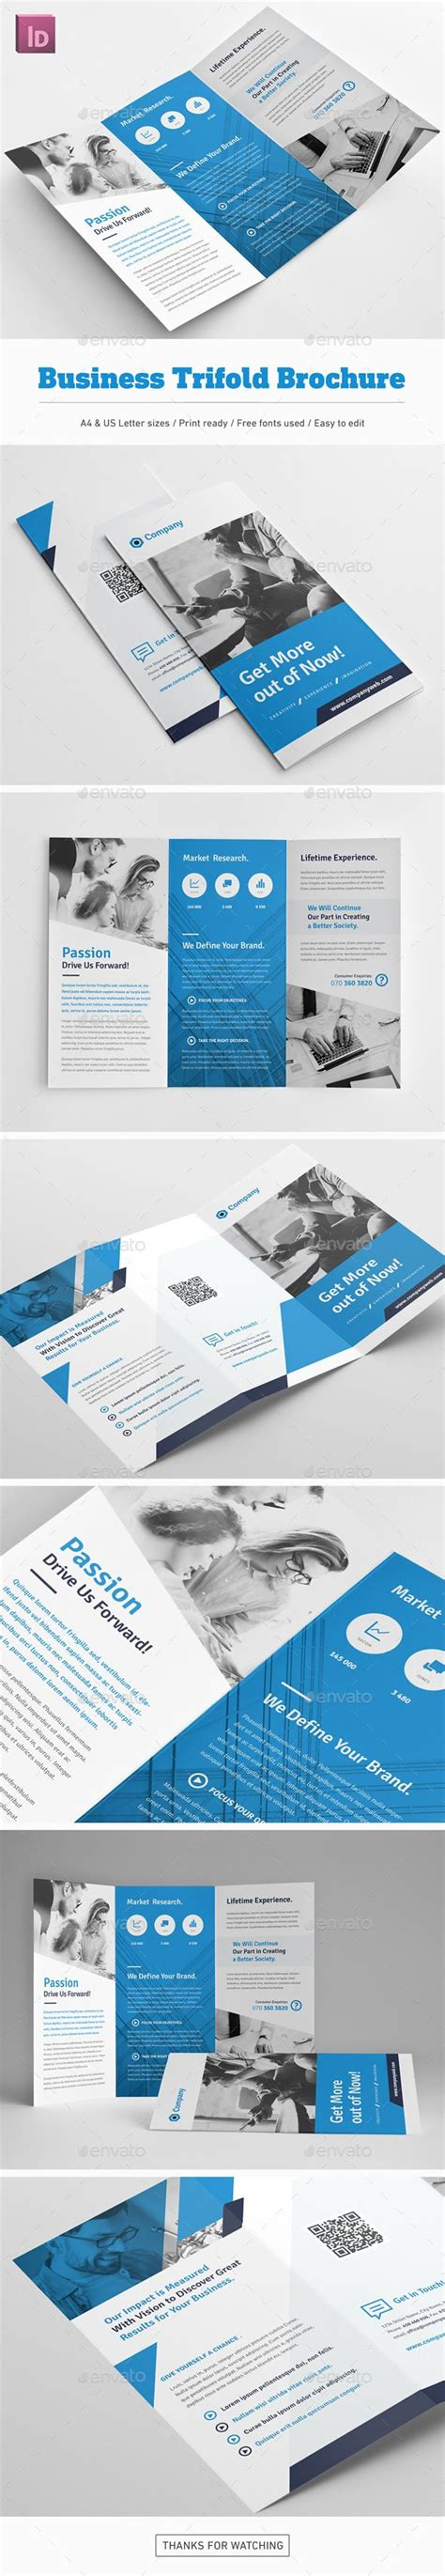 template plaquette indesign business trifold brochure template indesign indd